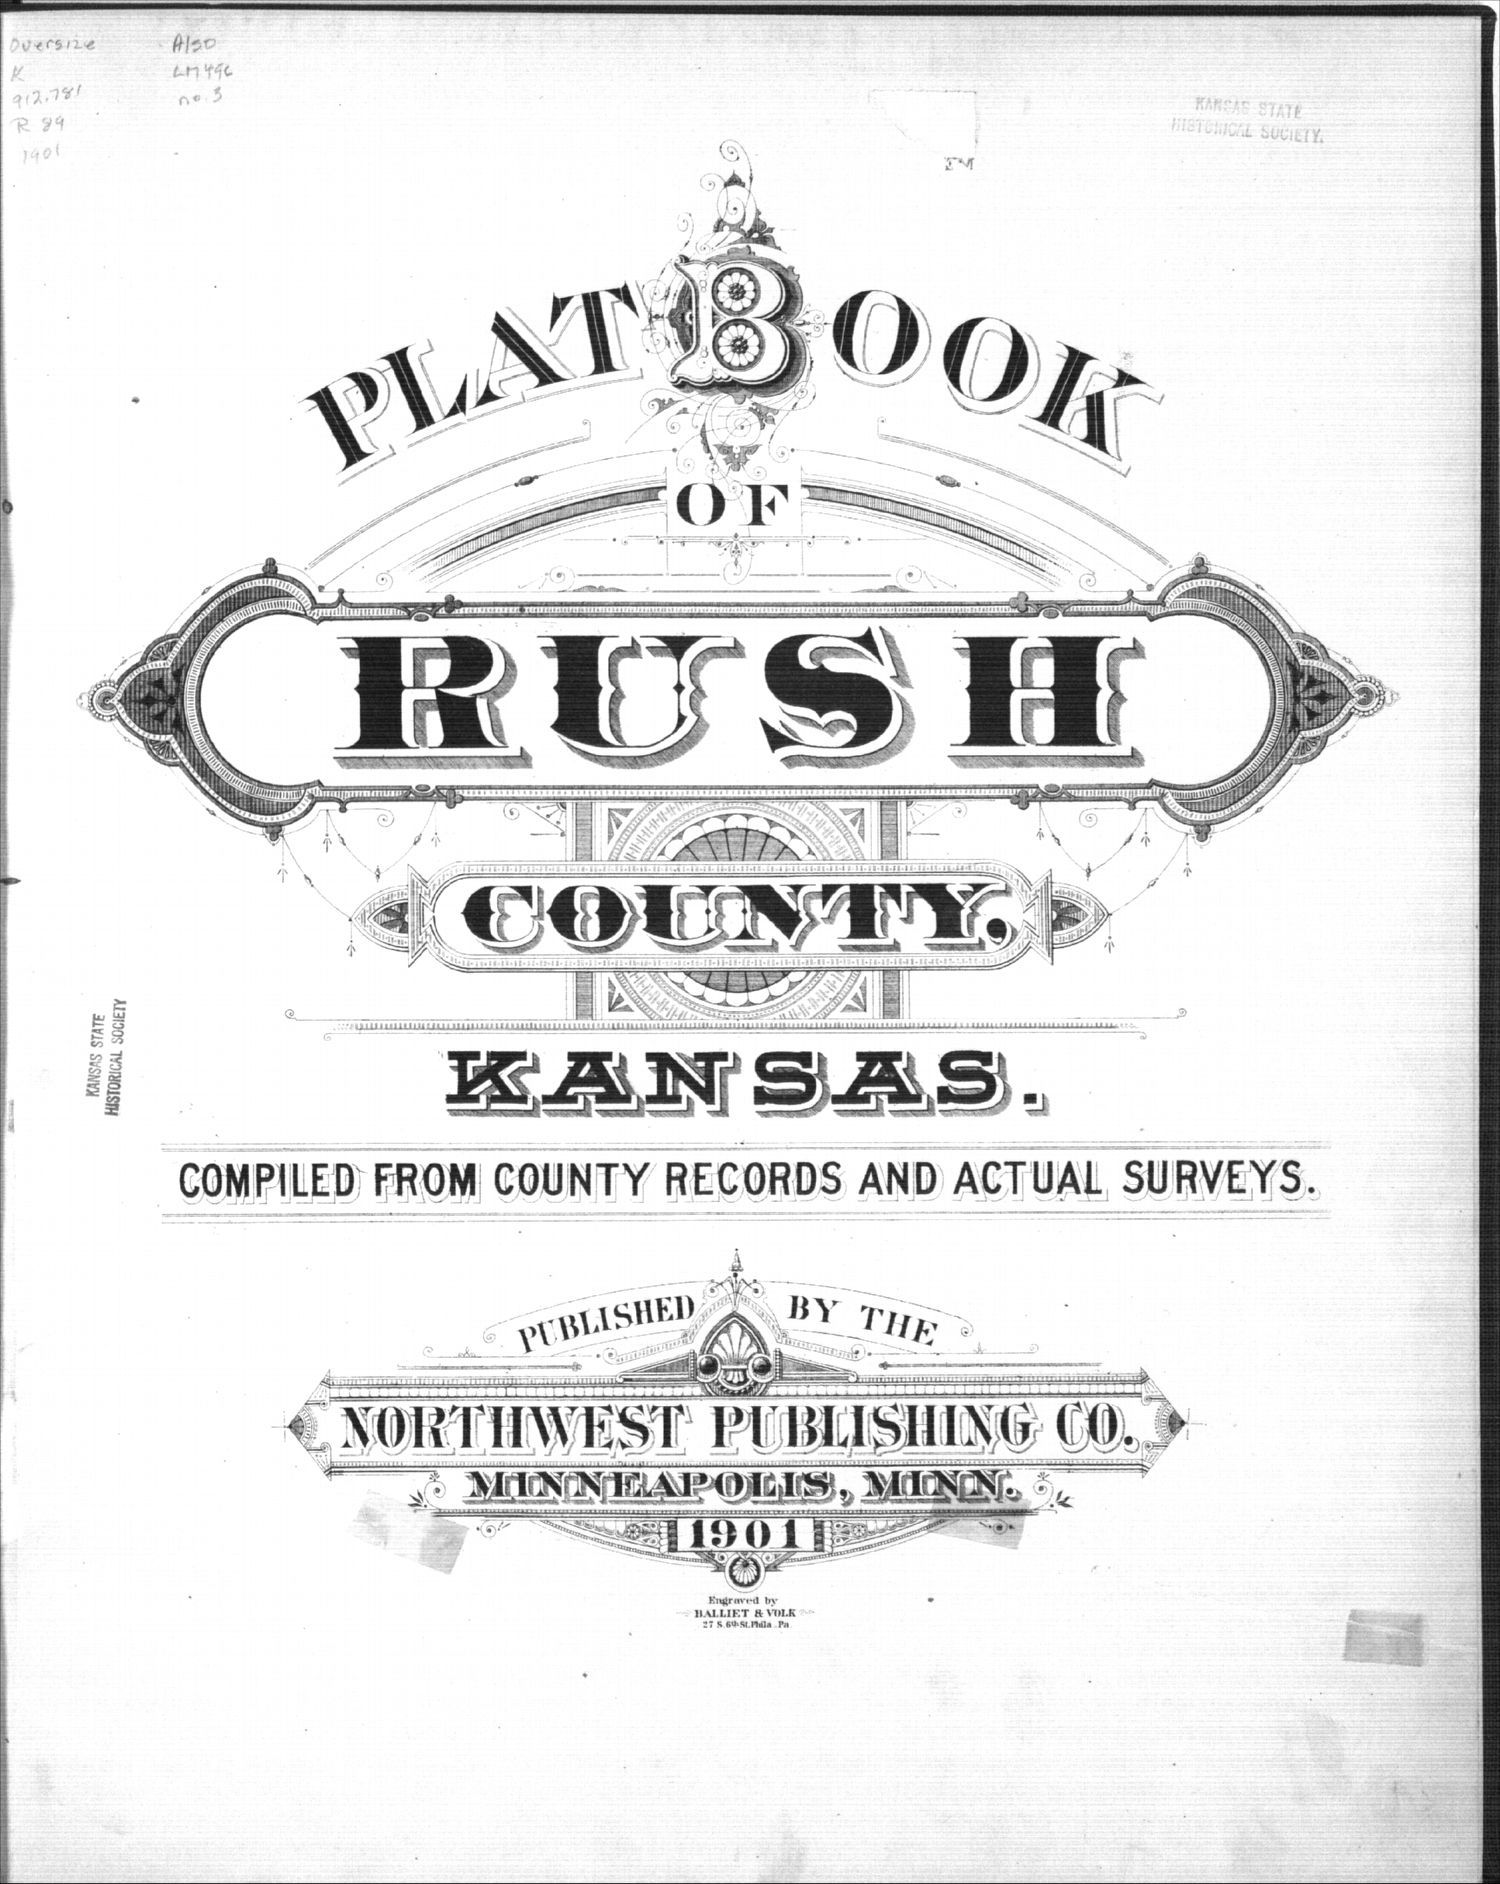 Plat book, Rush County, Kansas - Title Page